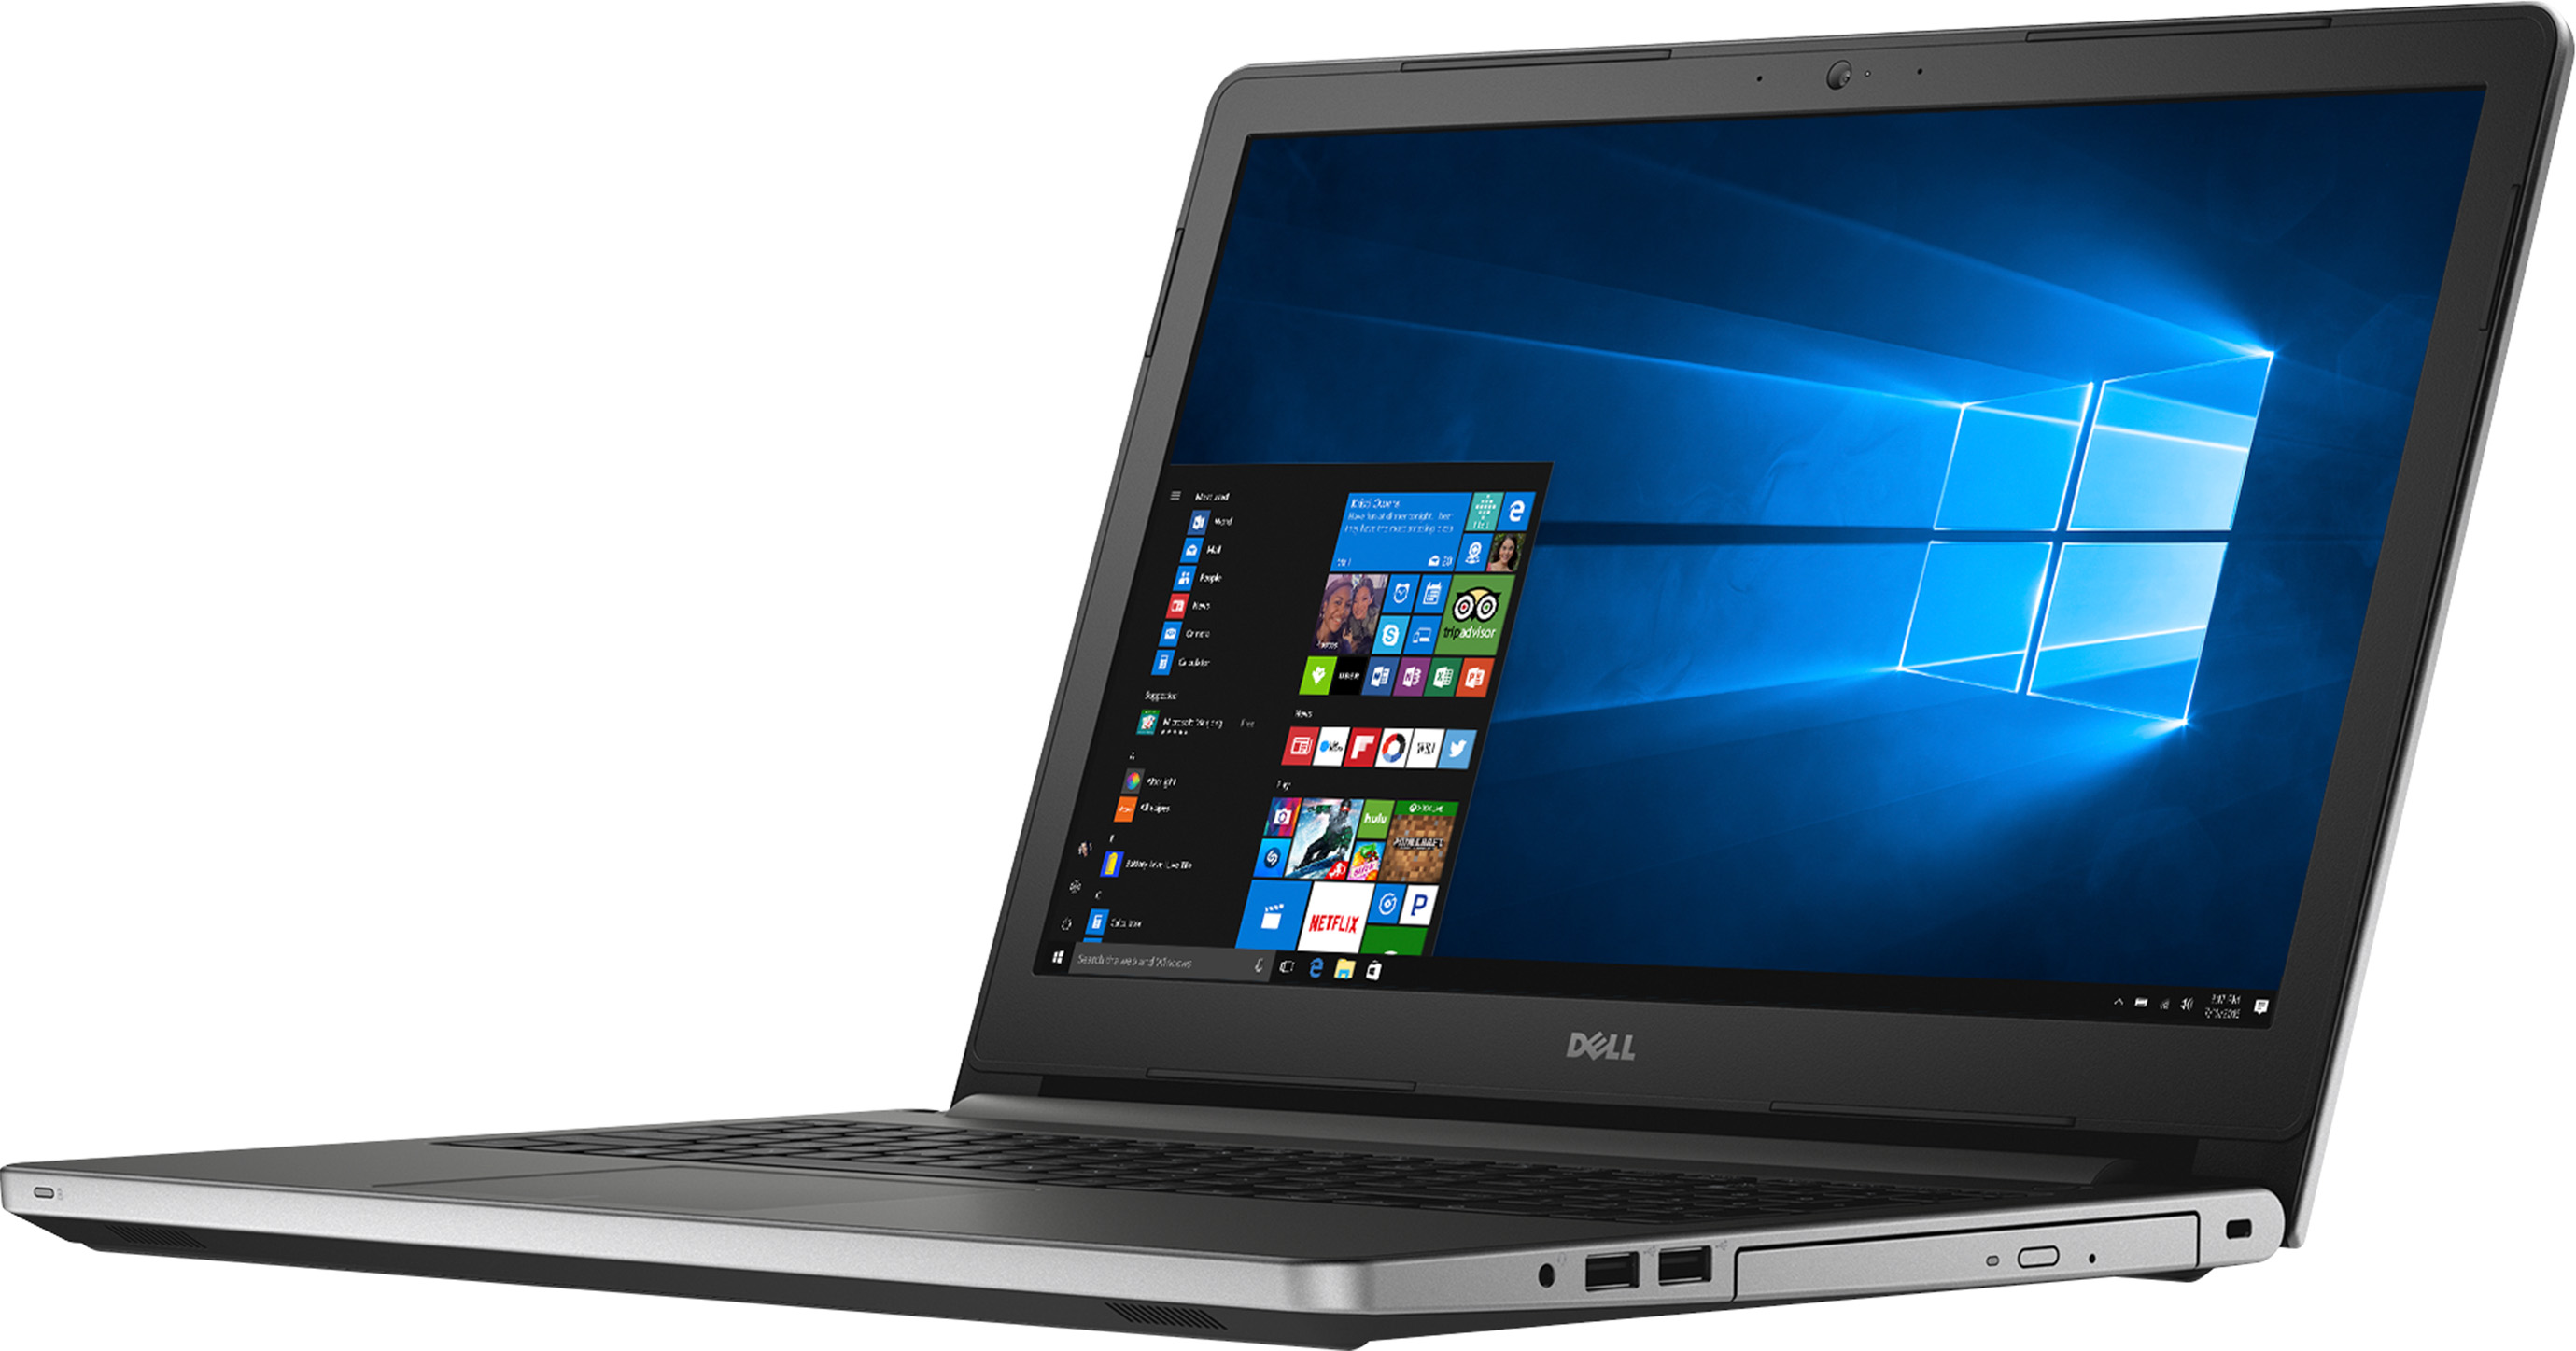 Dell Inspiron 15 i5559 Signature Edition Laptop